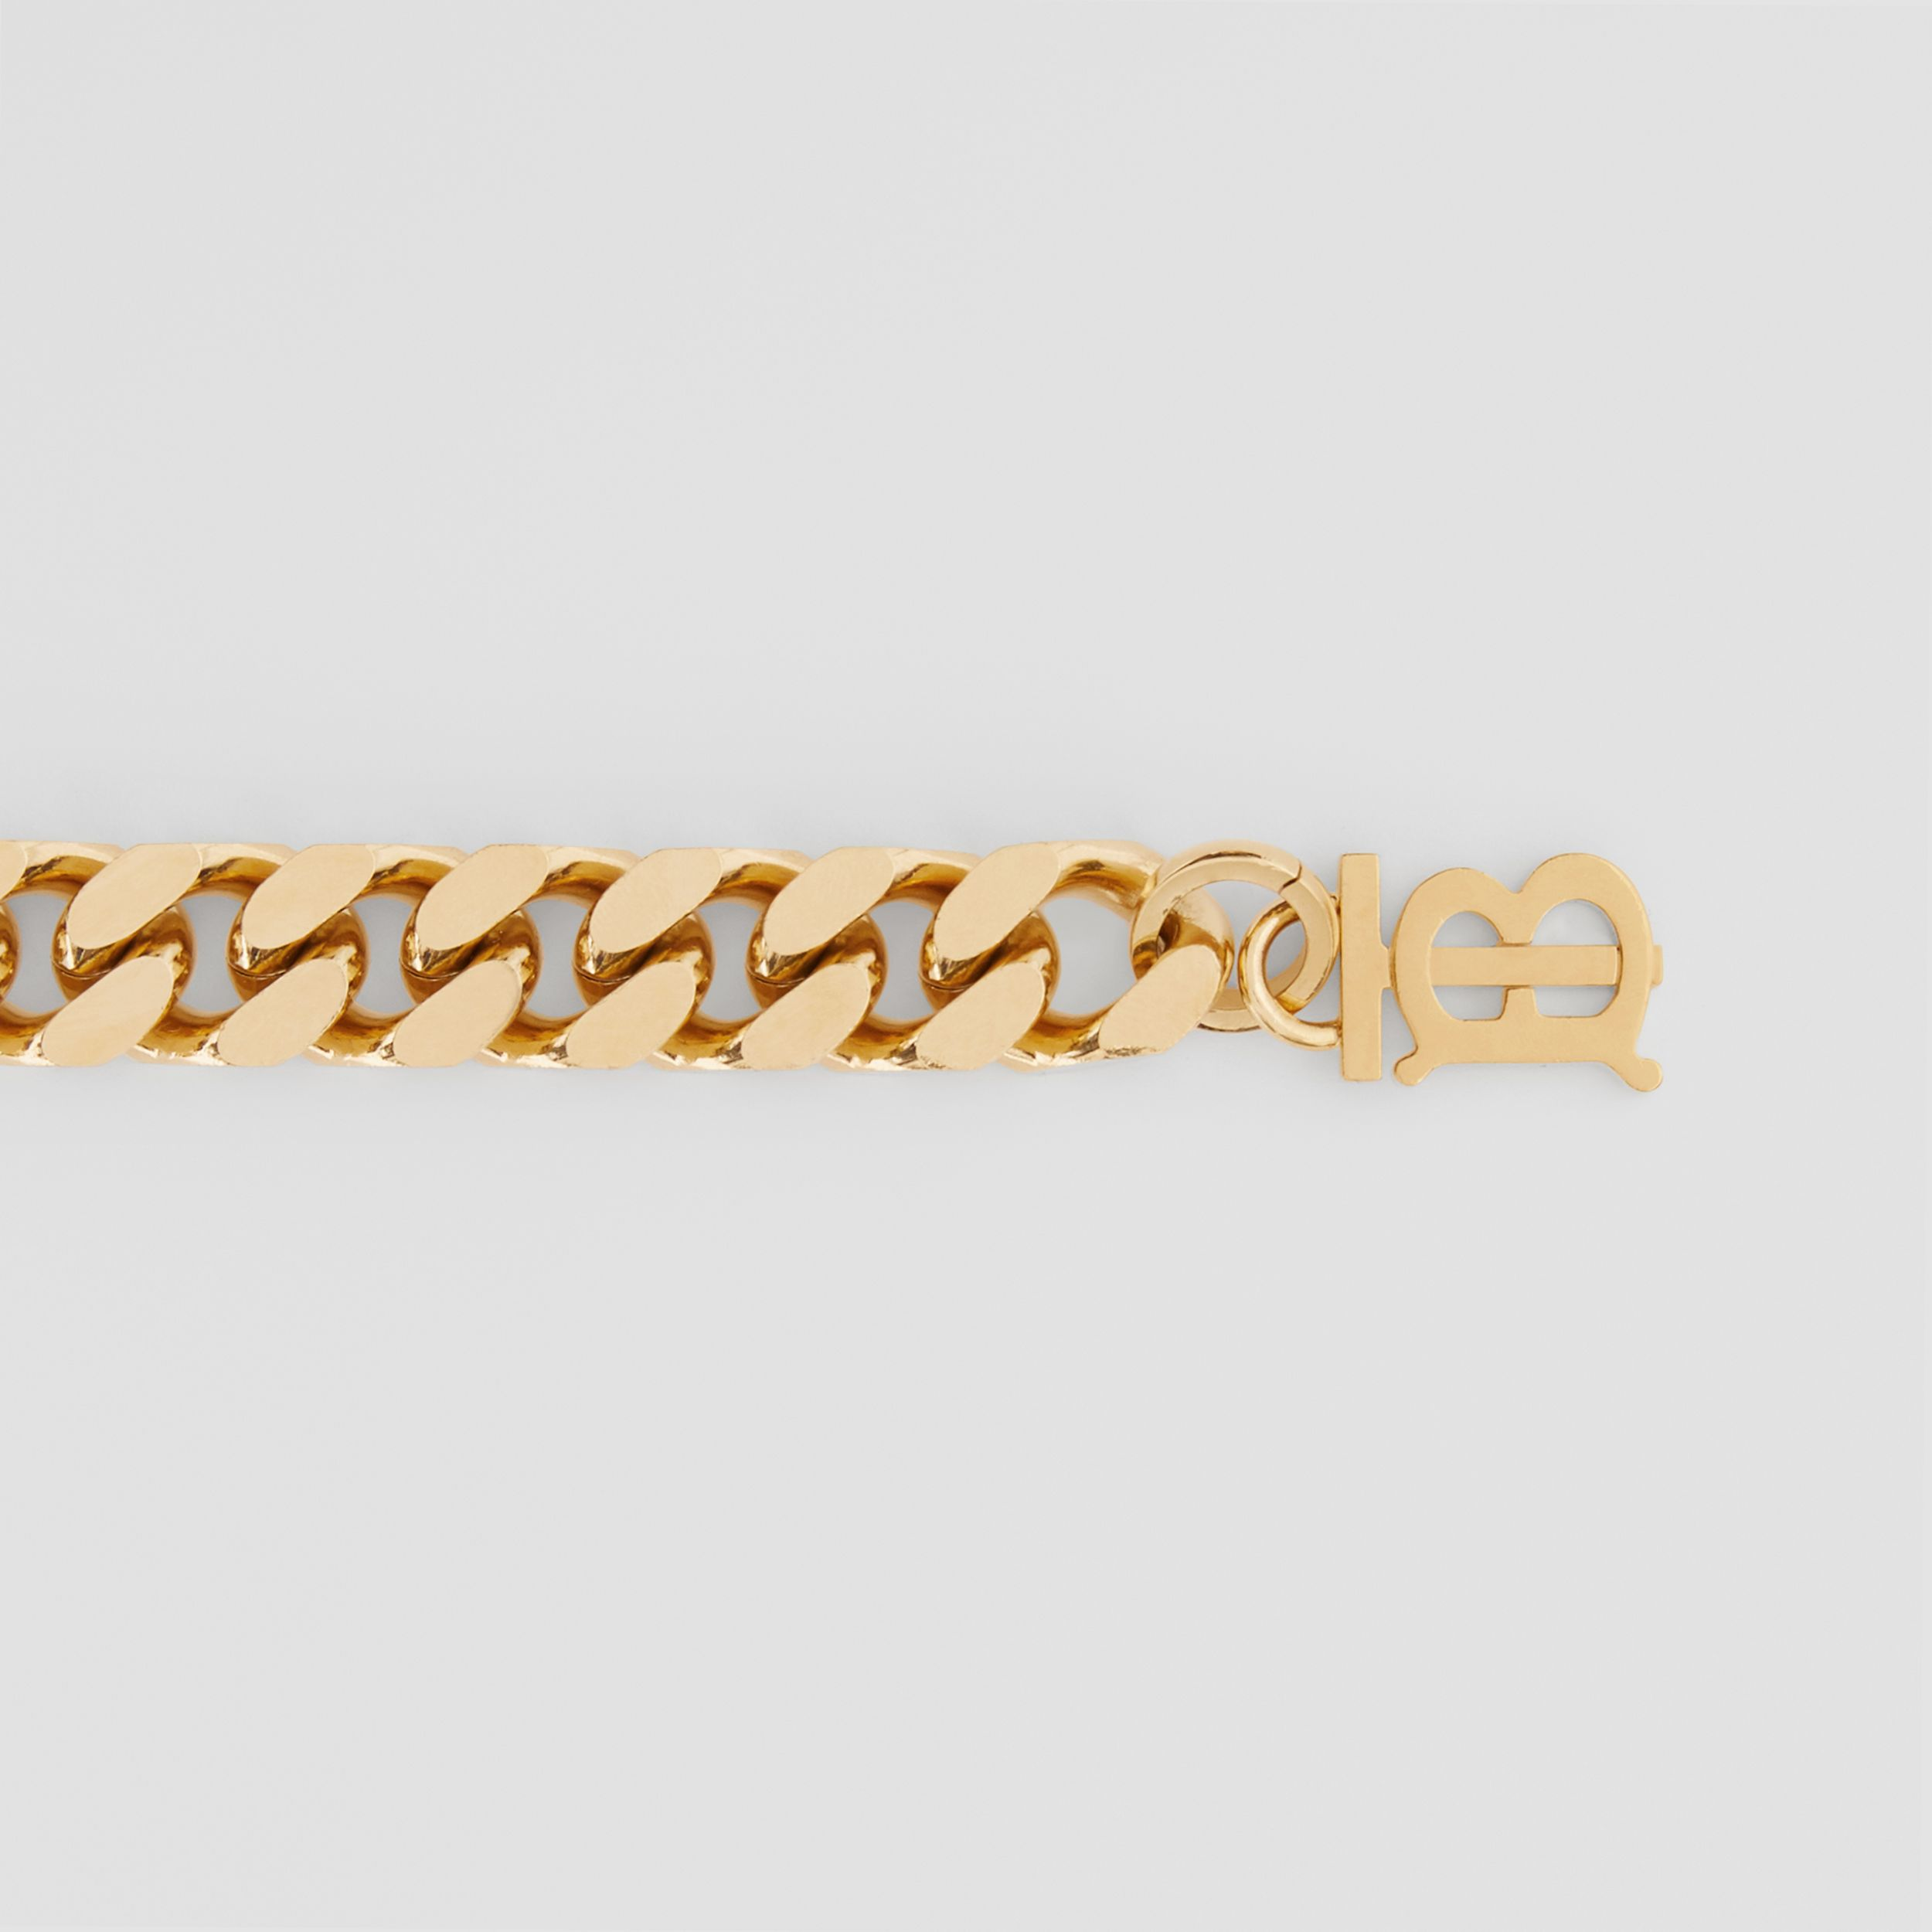 Monogram Motif Gold-plated Chain Belt in Light - Women | Burberry - 2